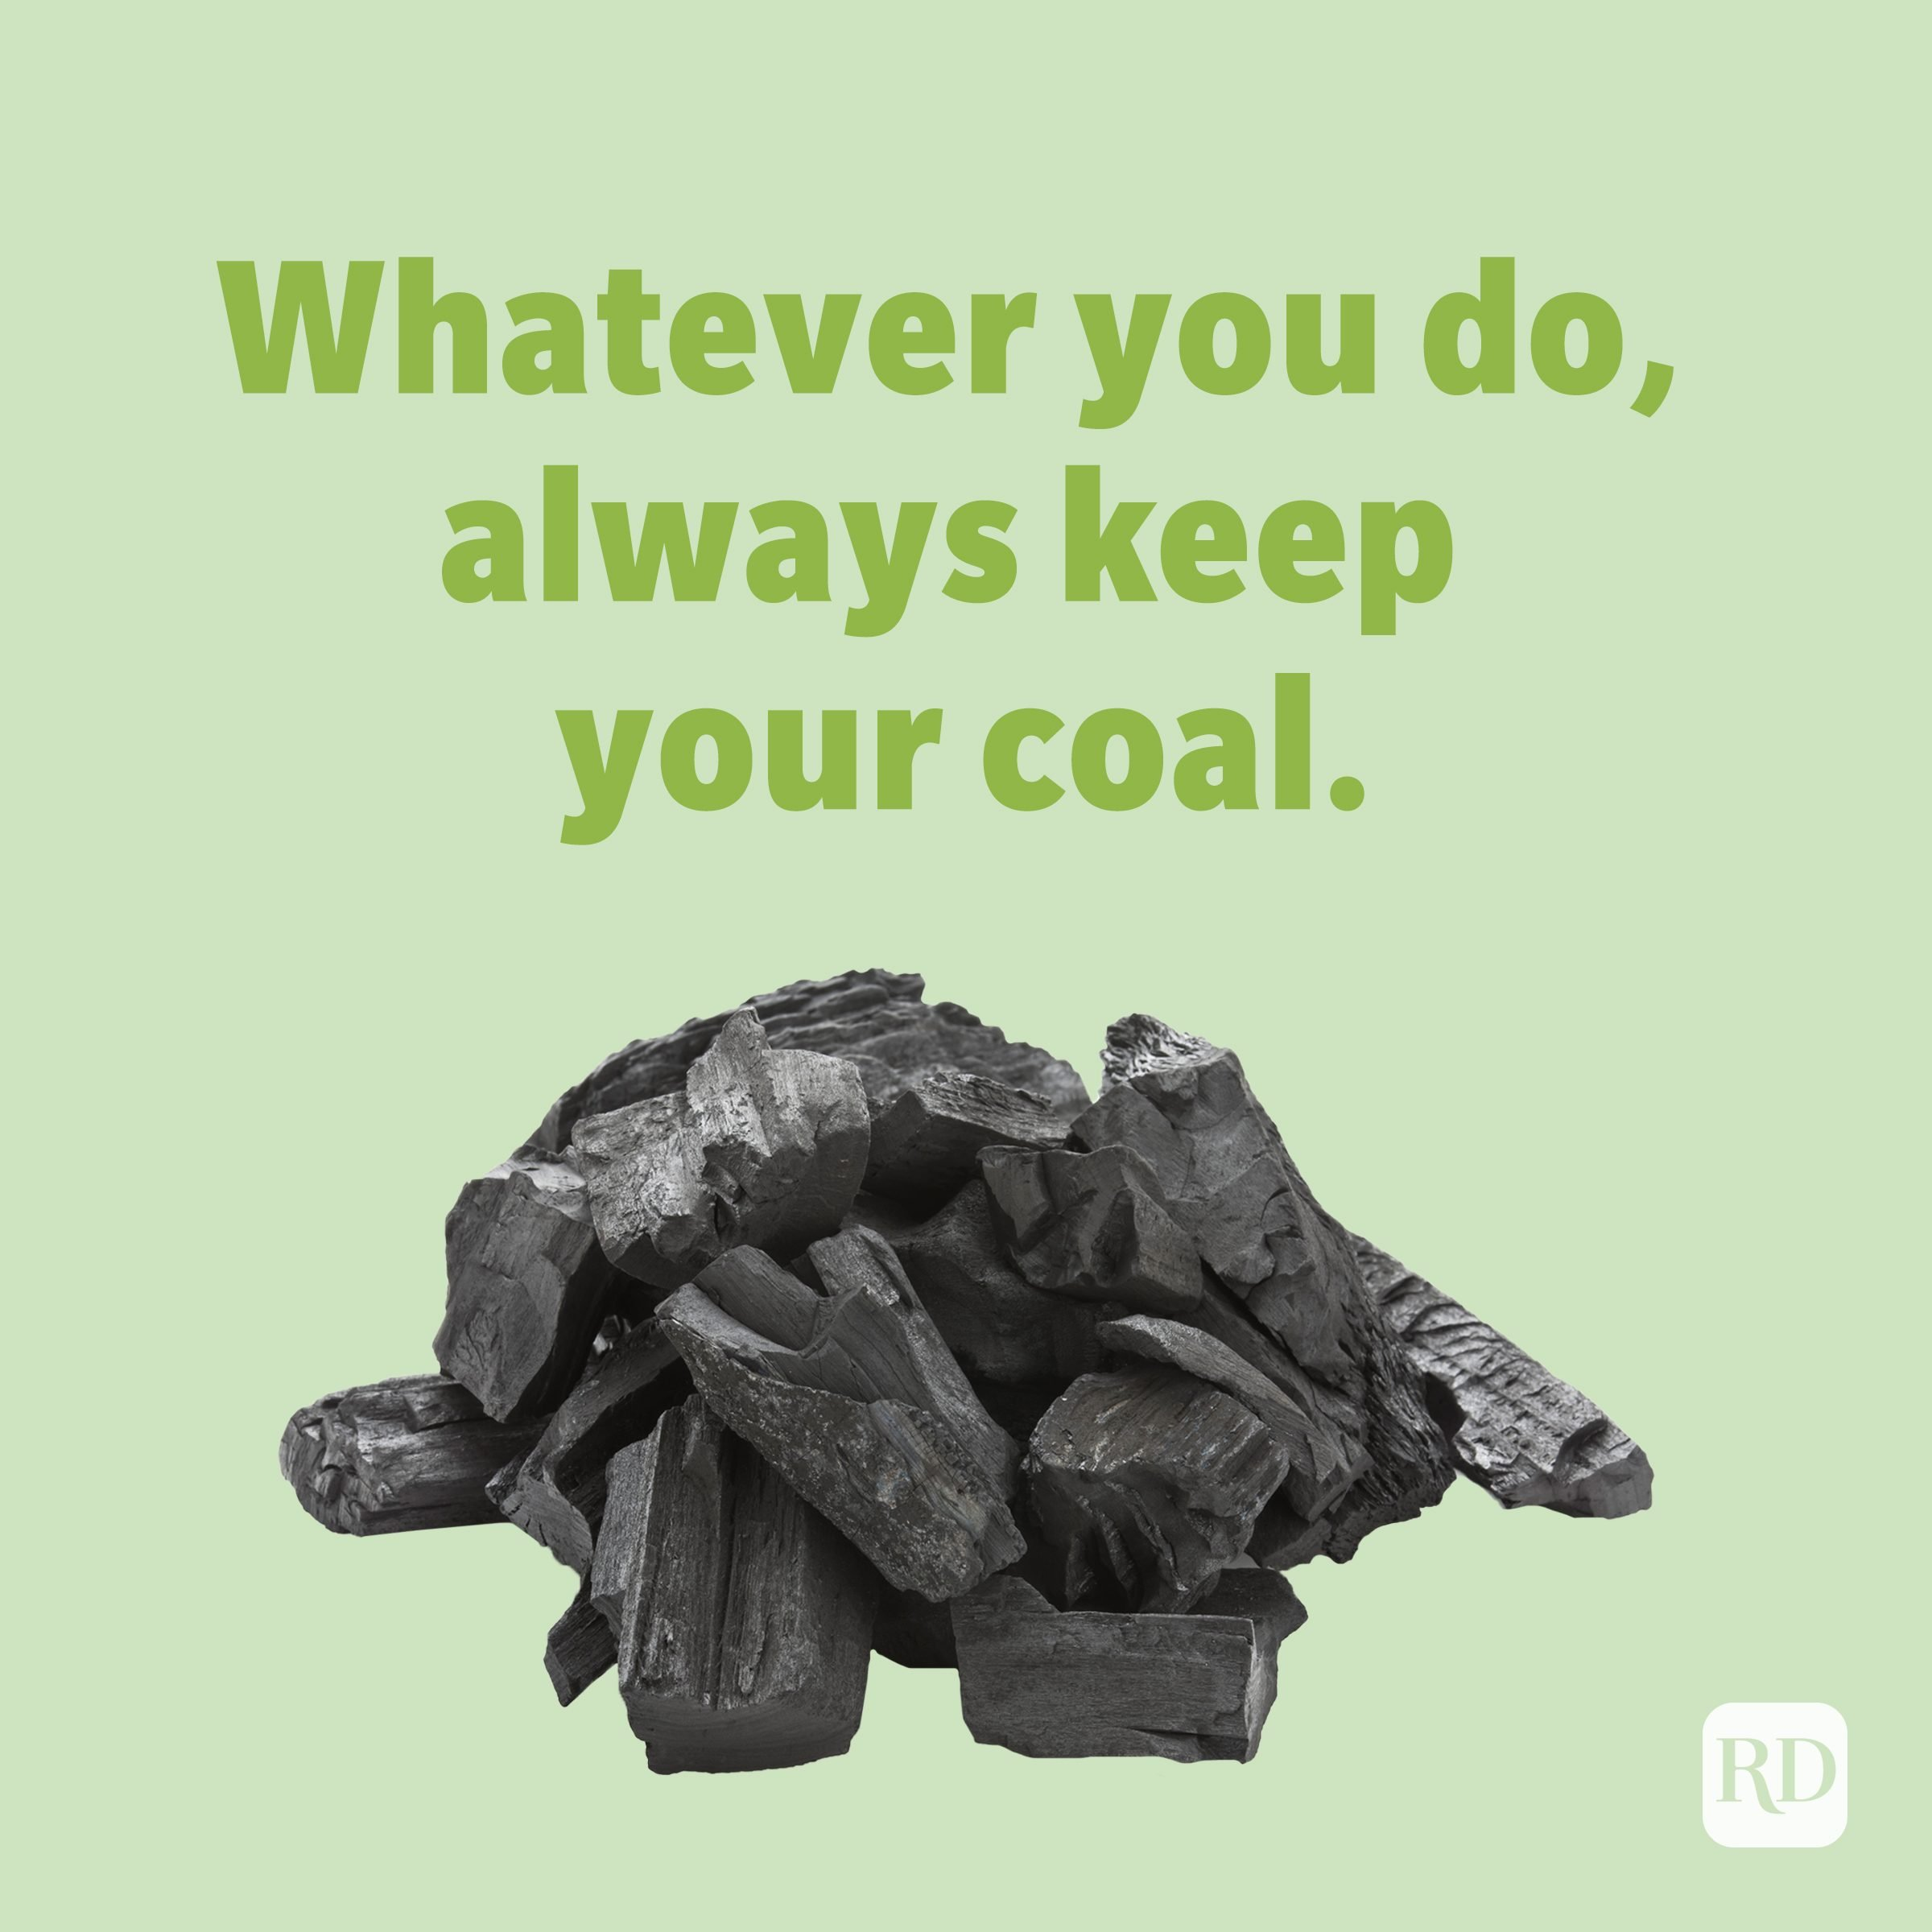 Whatever you do, always keep your coal. Rock puns